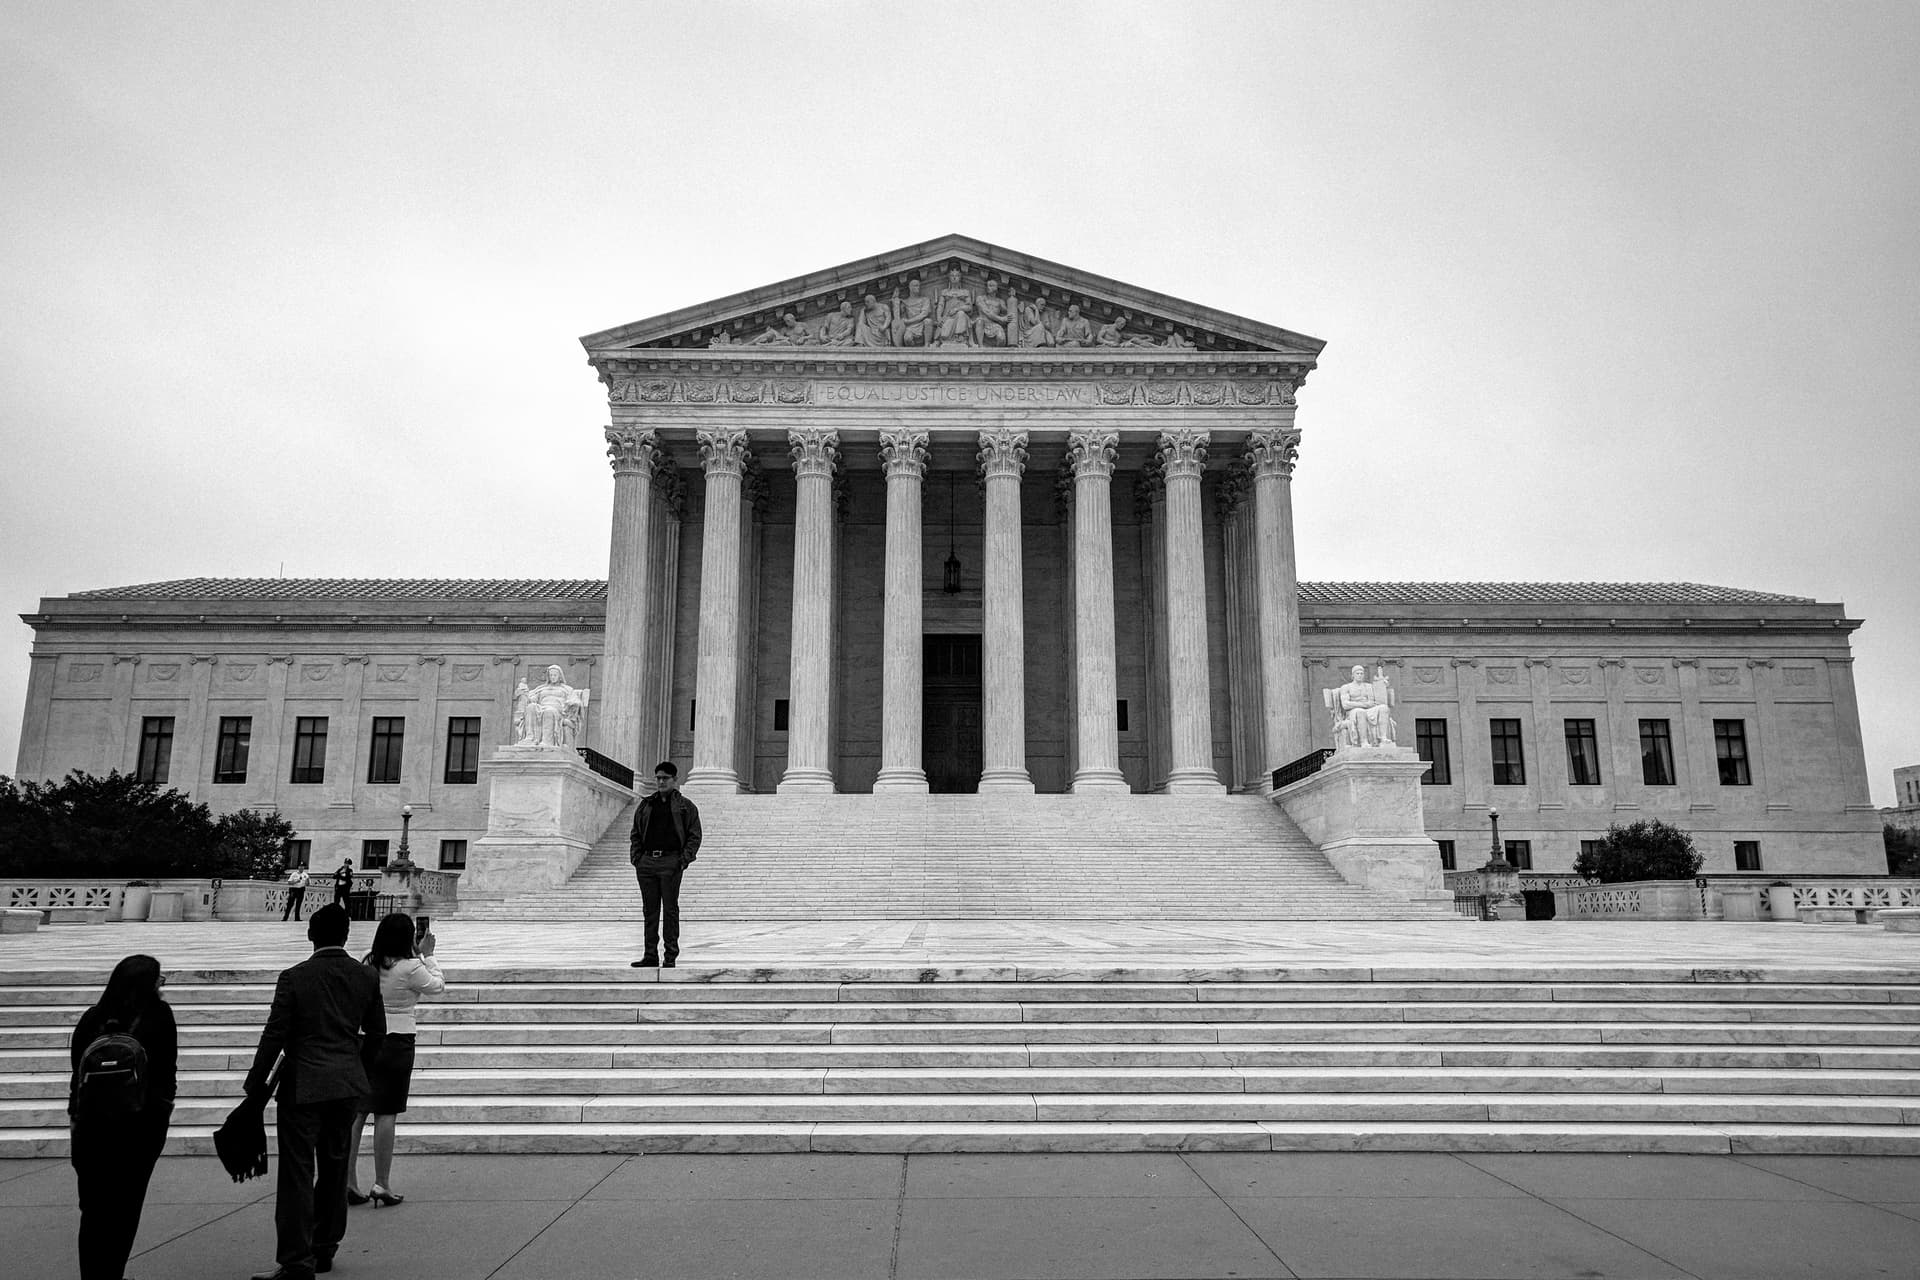 A black-and-white photograph of the entrance to the United States Supreme Court. On the steps to the left, a man is having is picture taken by a woman, while two other people look on.